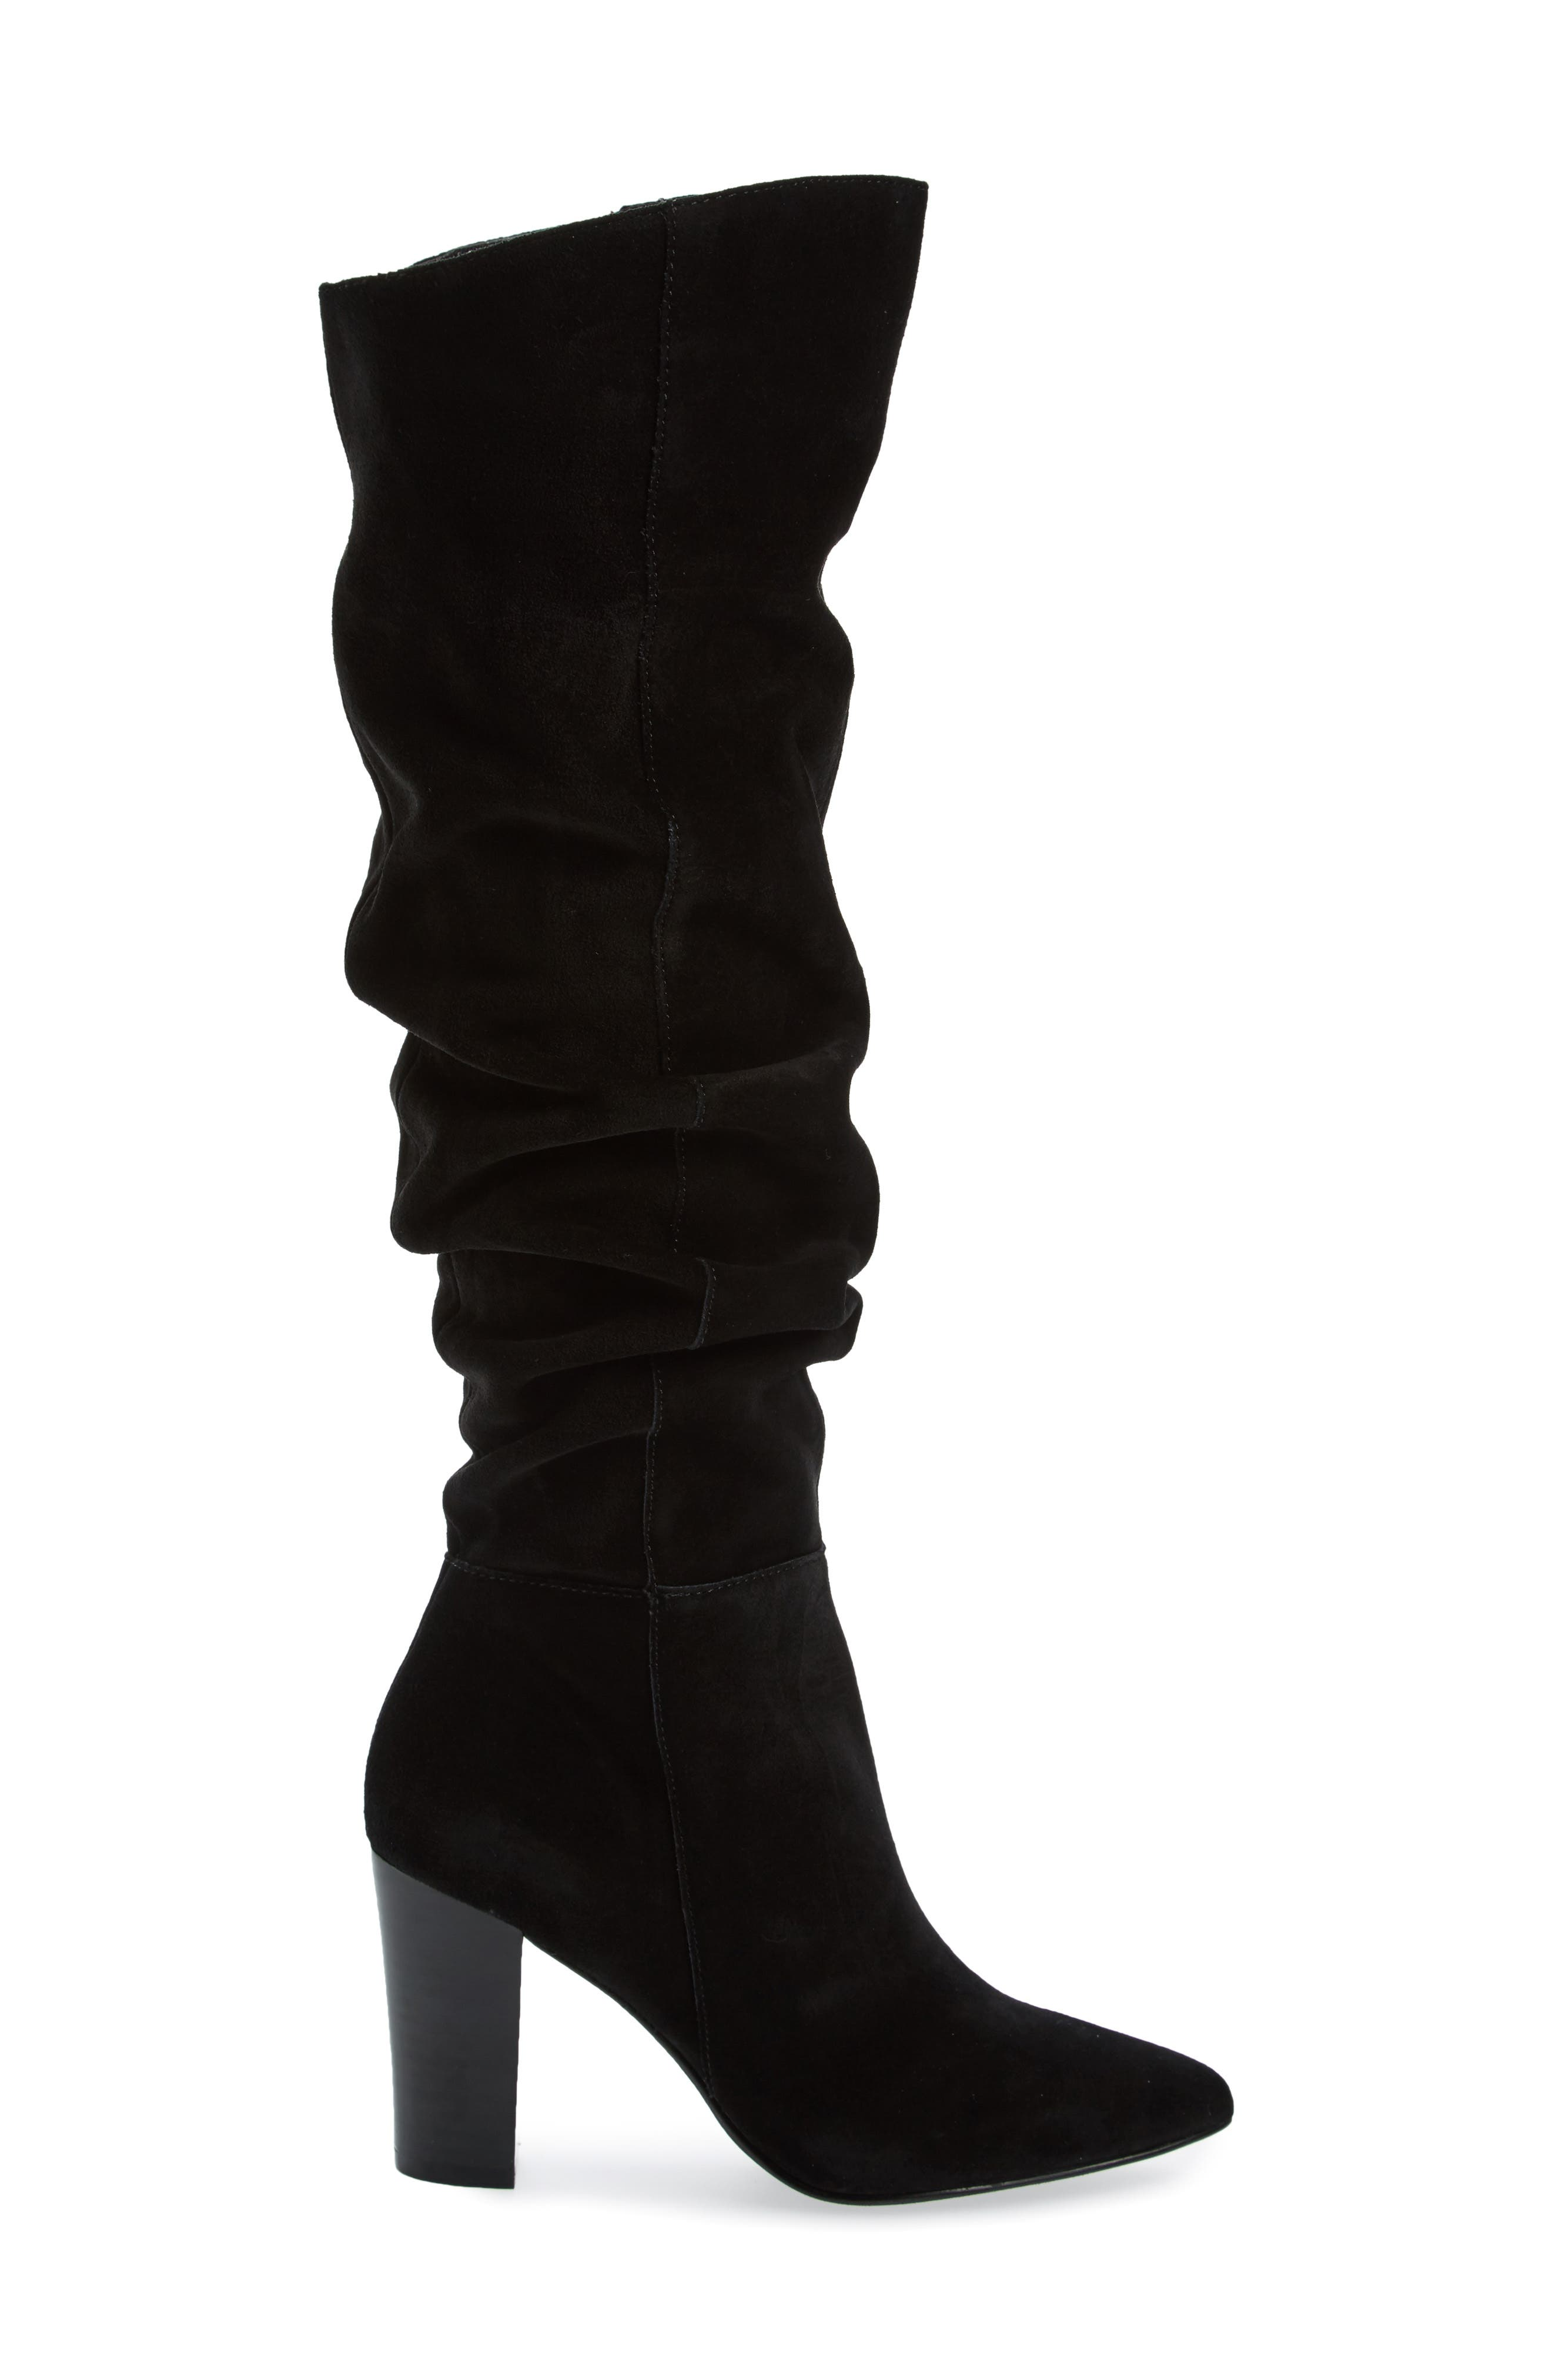 x Something Navy Aiden Knee High Boot,                             Alternate thumbnail 3, color,                             001